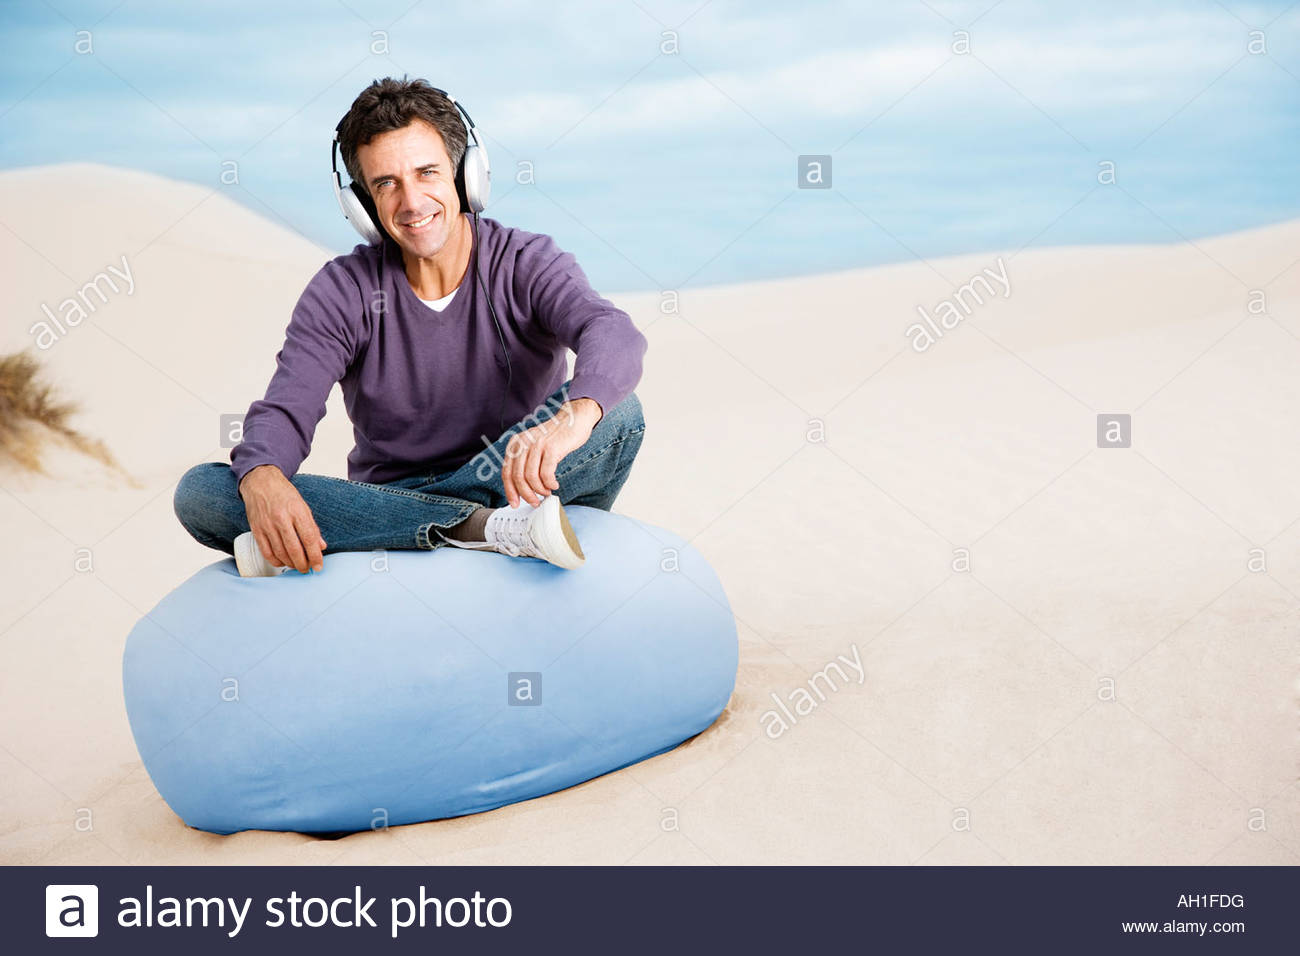 A man wearing headphones on a beanbag chair outdoors - Stock Image